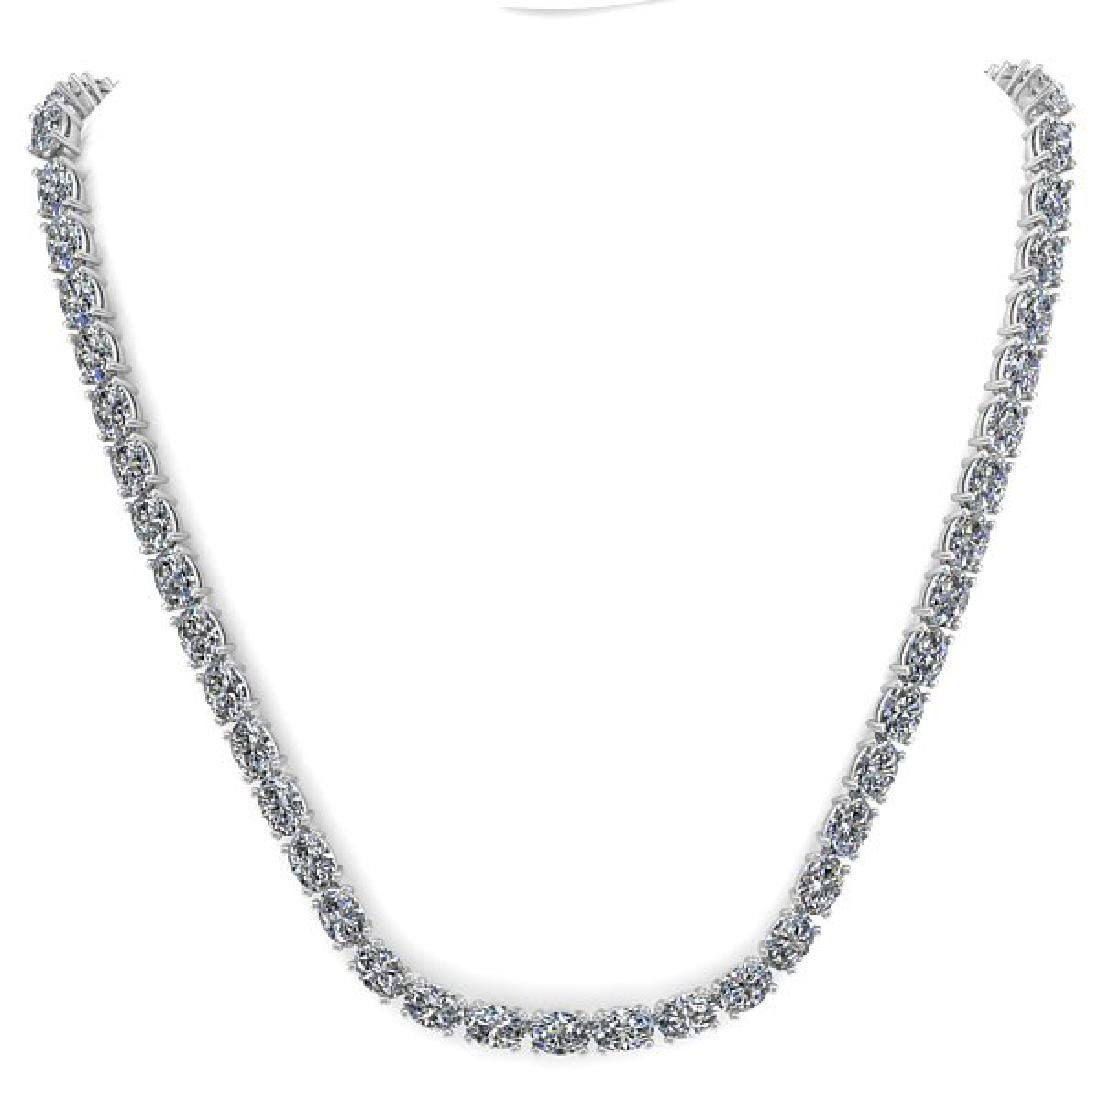 35 CTW Oval Cut Certified SI Diamond Necklace 14K White - 3